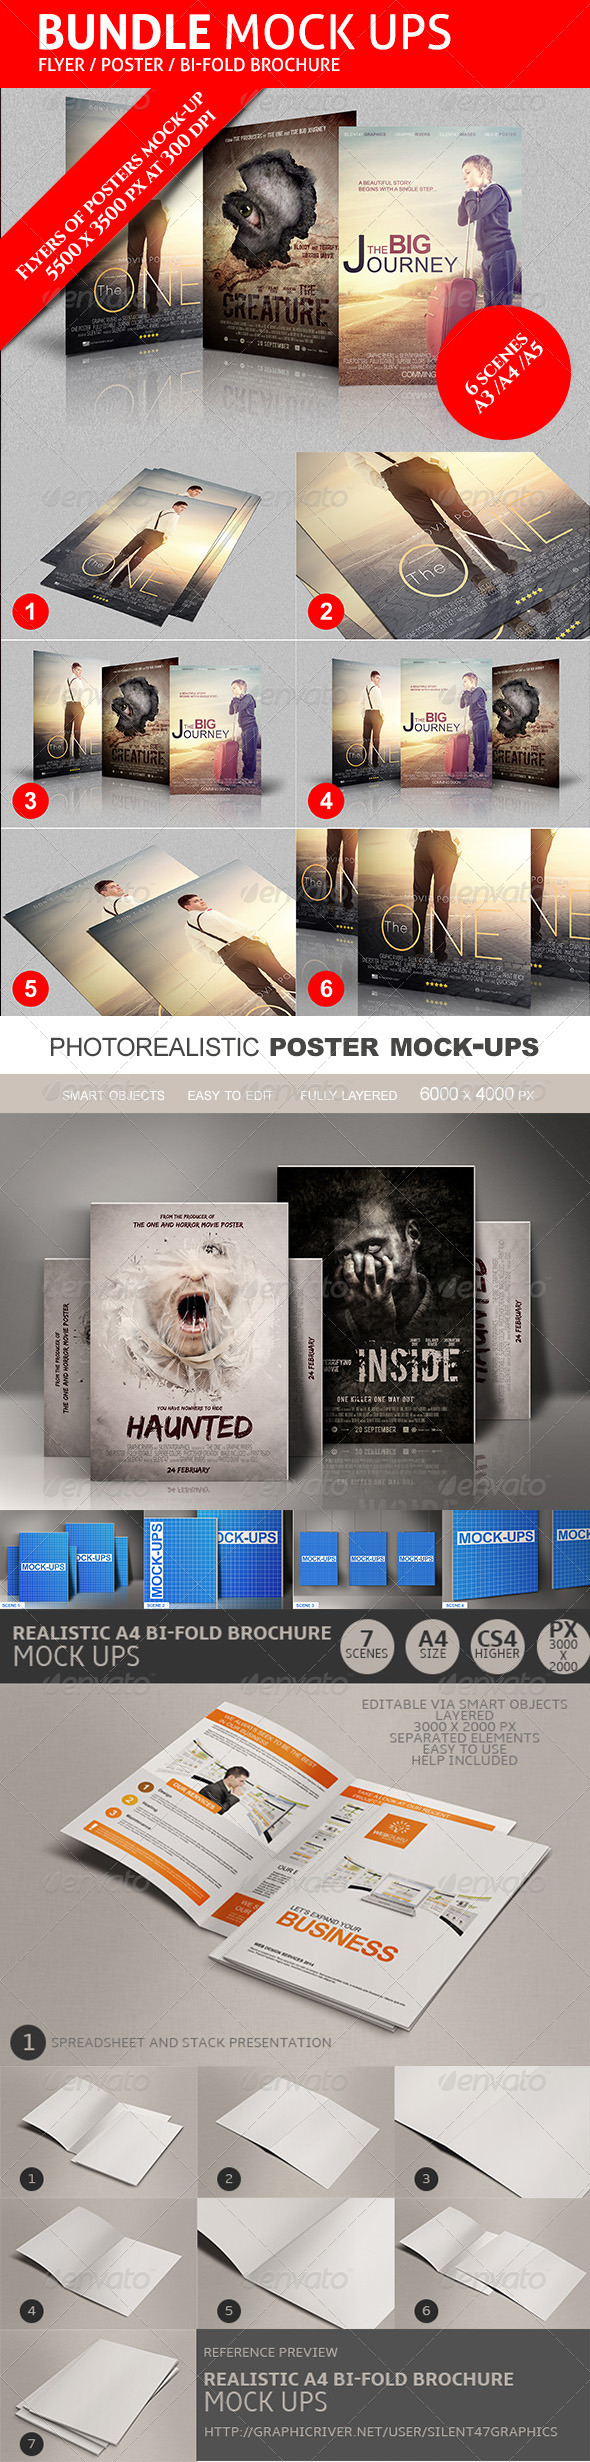 GraphicRiver Flyers Posters Bifold Mockups Bundle 8336818